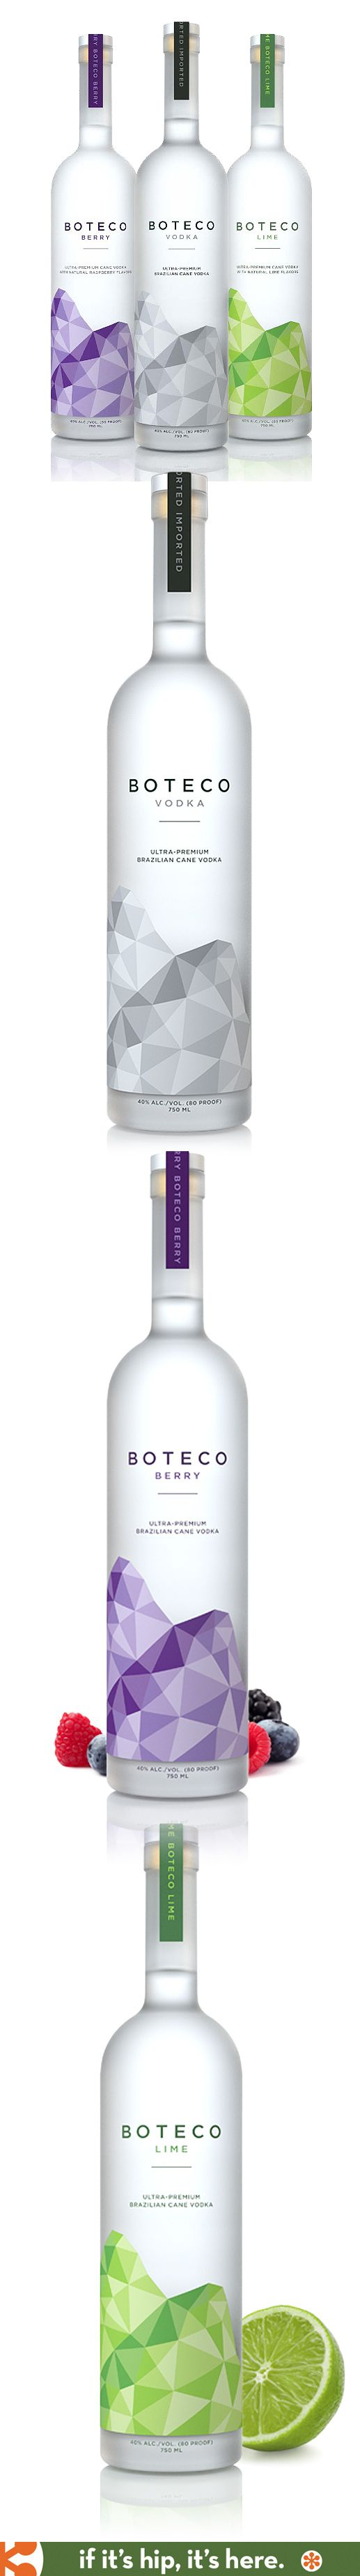 Brazilian's Premium Cane Vodka, Boteco Vodka, comes in beautiful bottles designed by Shatterbox Studios.